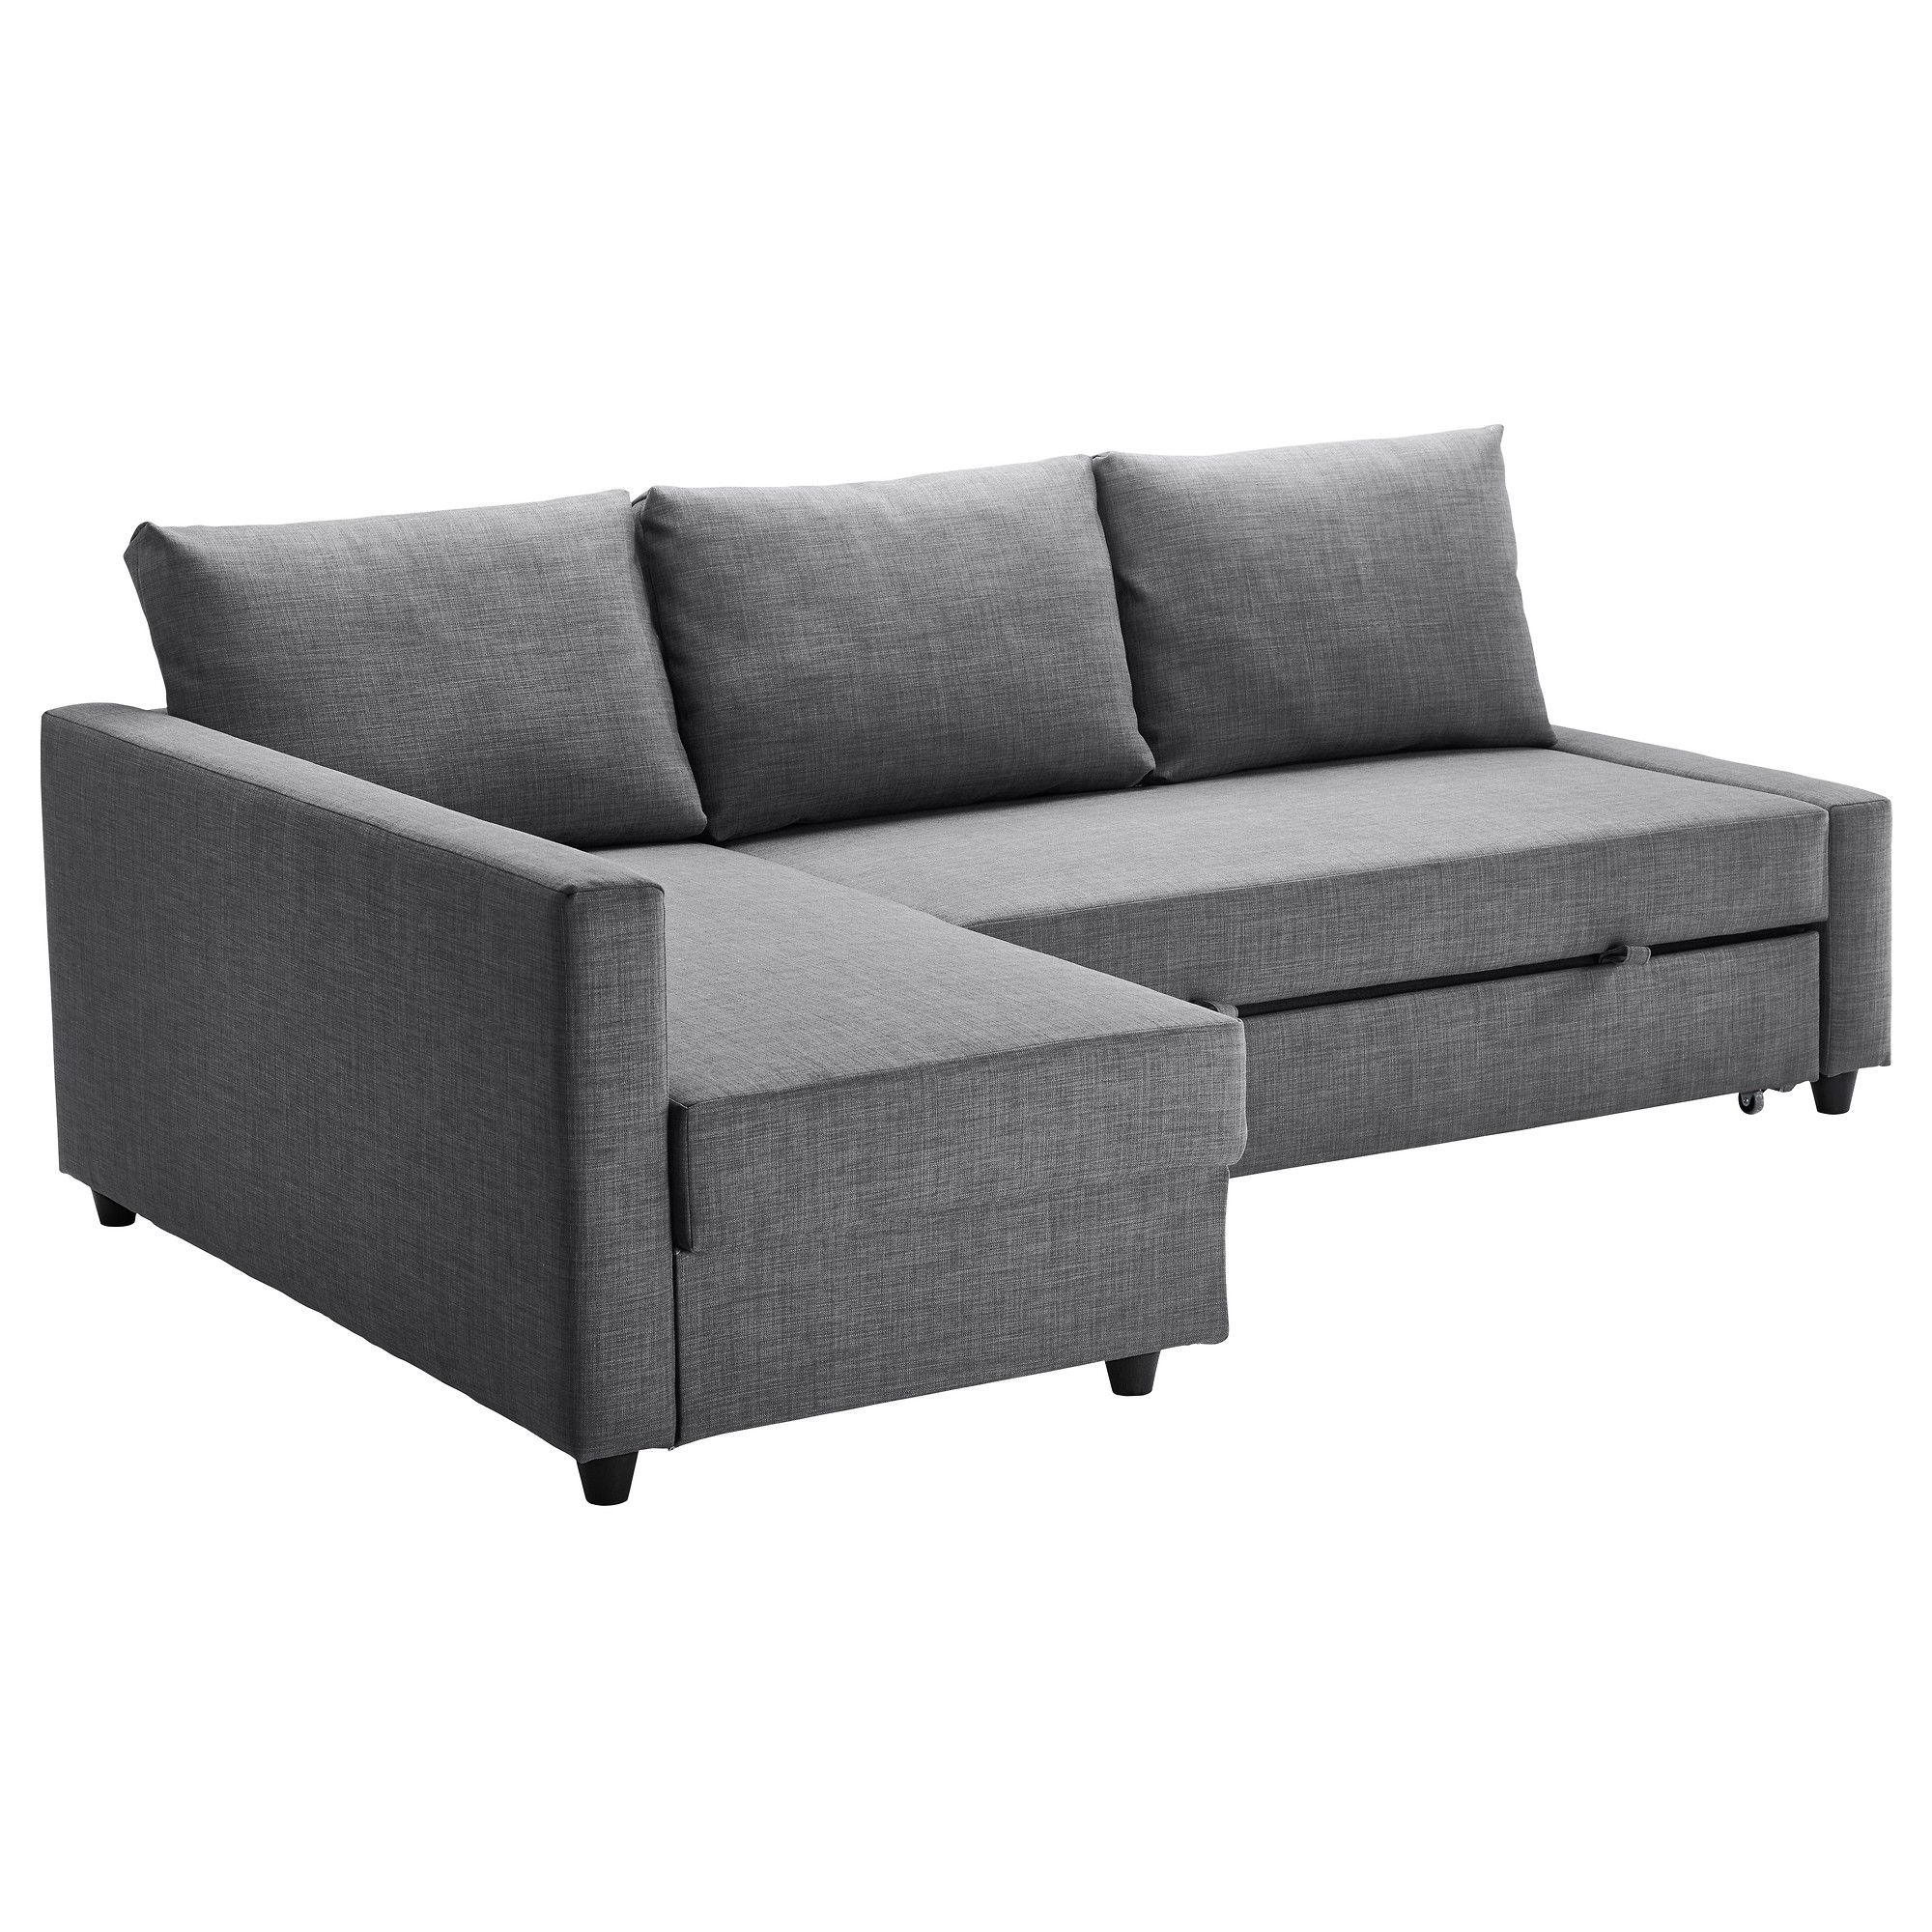 Ikea – Friheten, Sofa Bed With Chaise, Skiftebo Dark Gray, , , You Within Most Popular Ikea Sofa Beds With Chaise (Gallery 6 of 15)